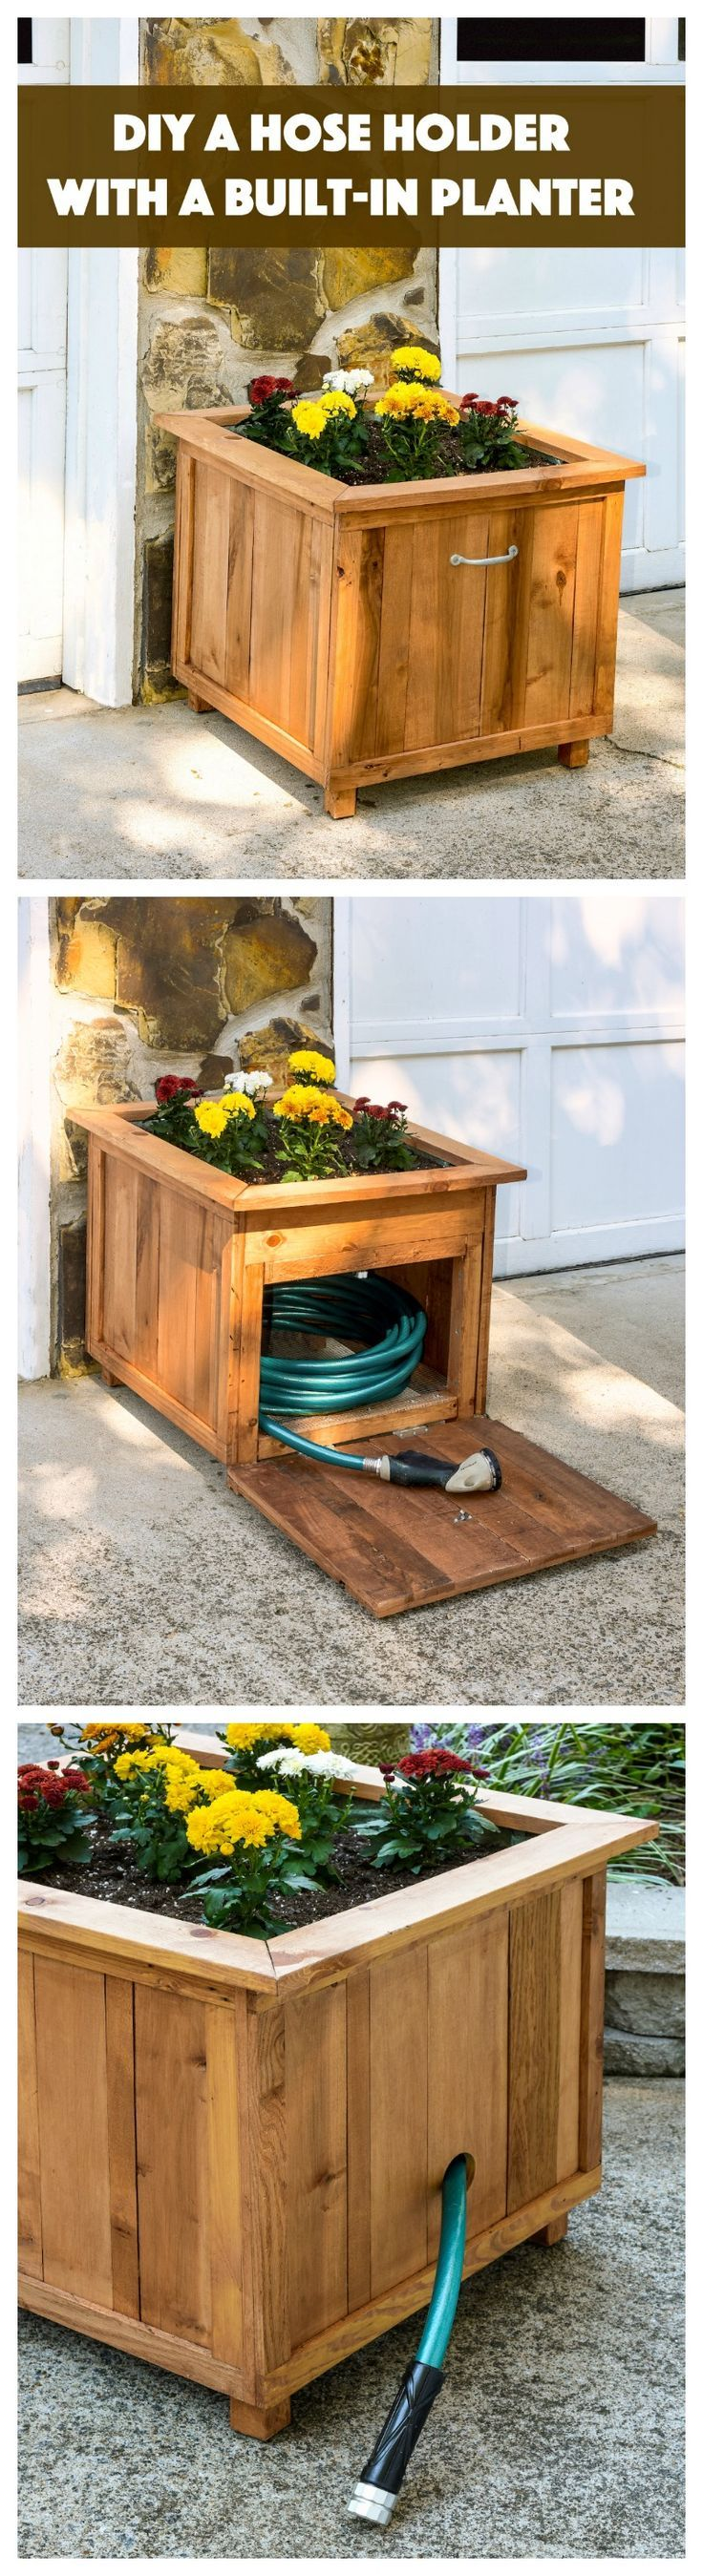 Build a unique hose holder using recycled pallet wood! This holder has a special feature; you can plan